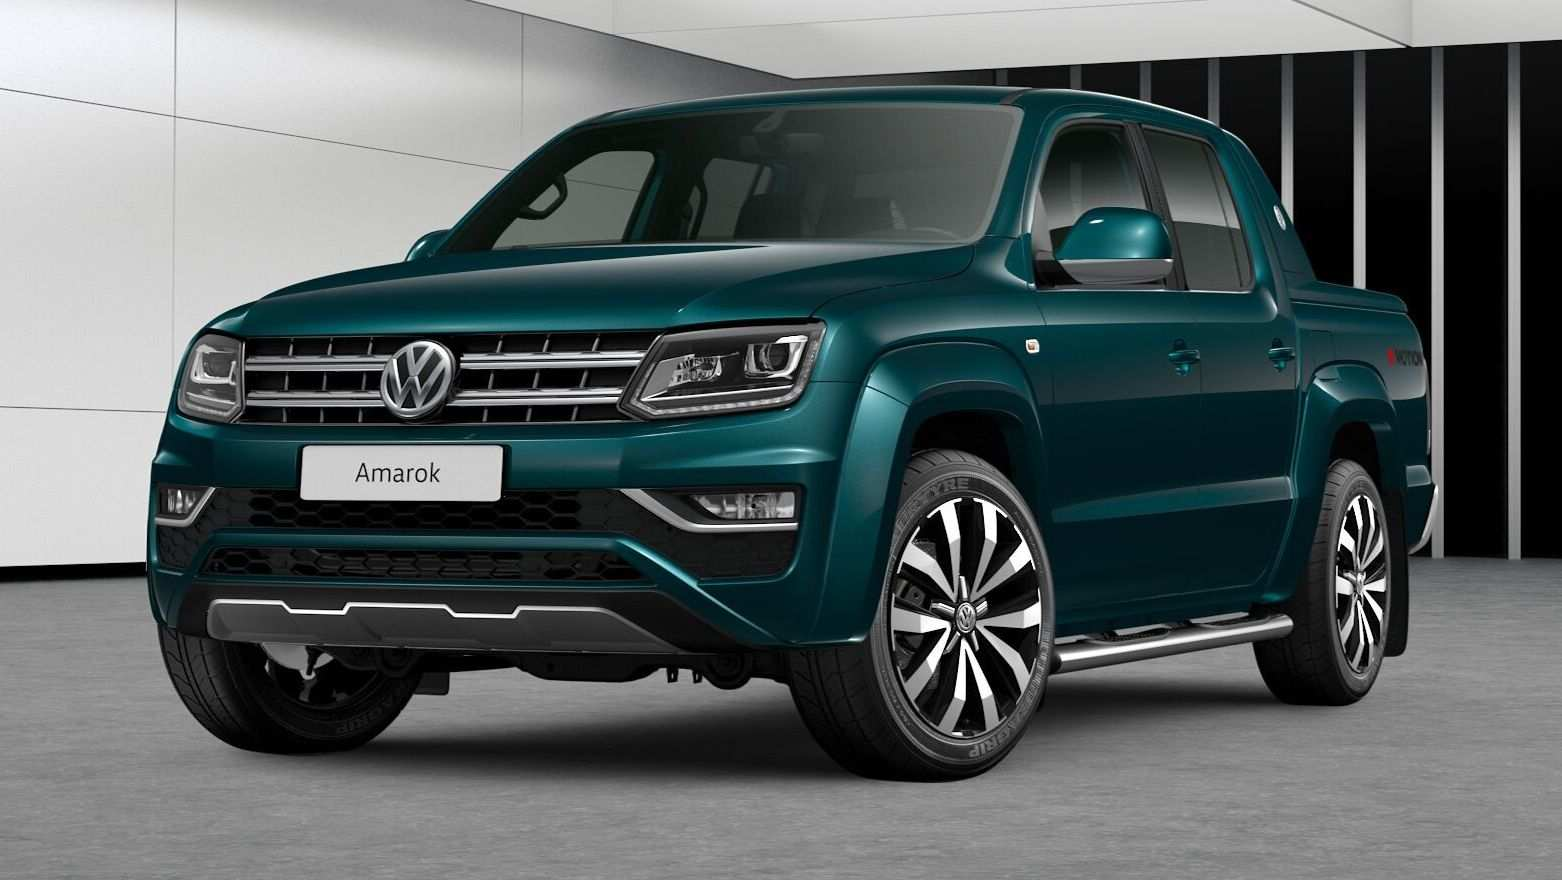 82 All New 2020 VW Amarok 2018 Rumors for 2020 VW Amarok 2018